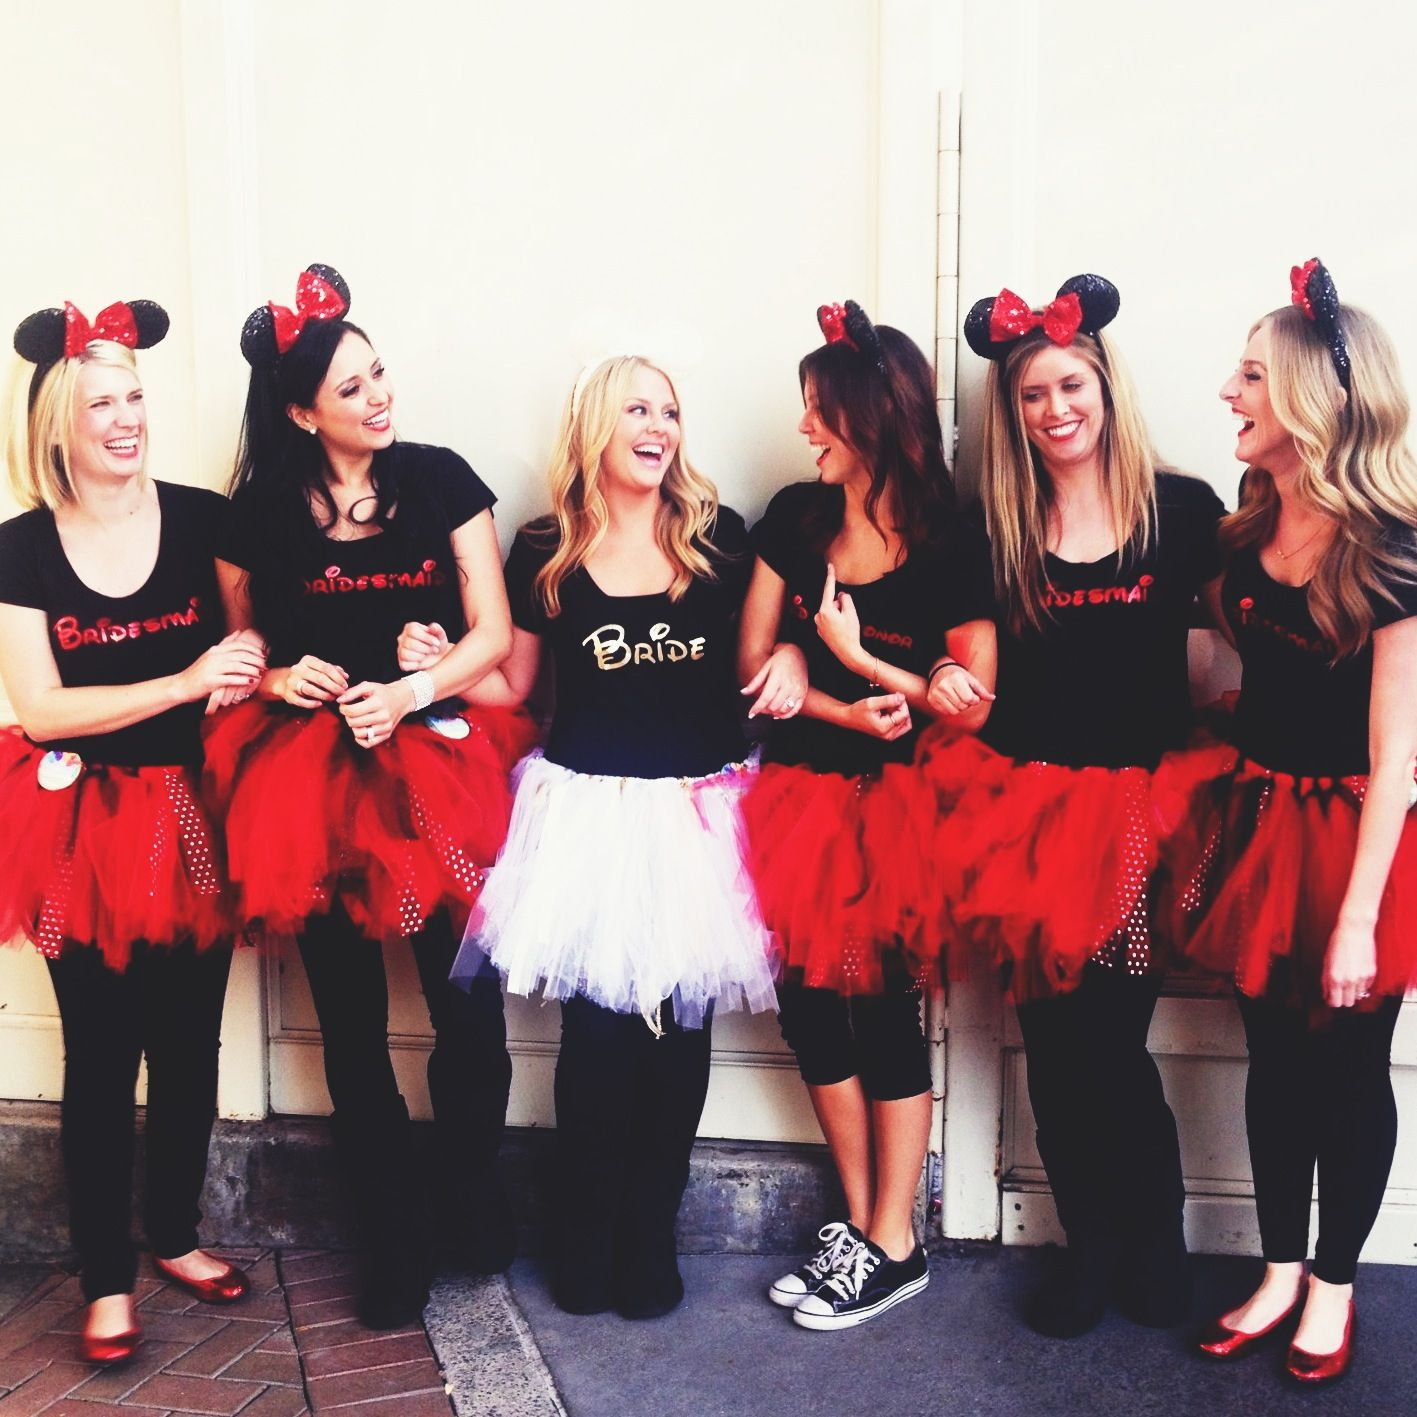 Inexpensive Bachelorette Party Ideas